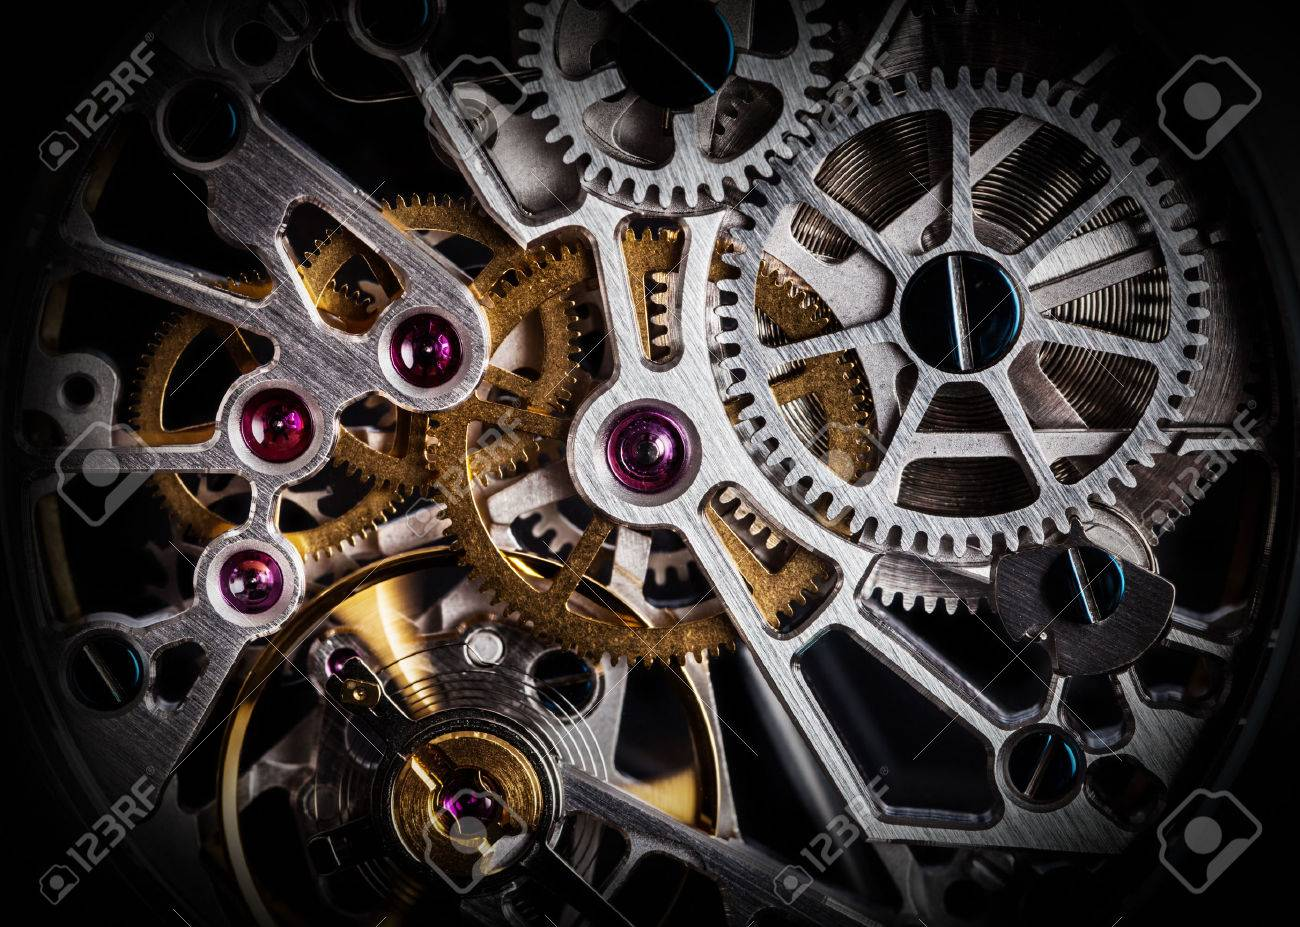 Mechanism, clockwork of a watch with jewels, close-up. Vintage luxury background. Time, work concept. Standard-Bild - 59181375